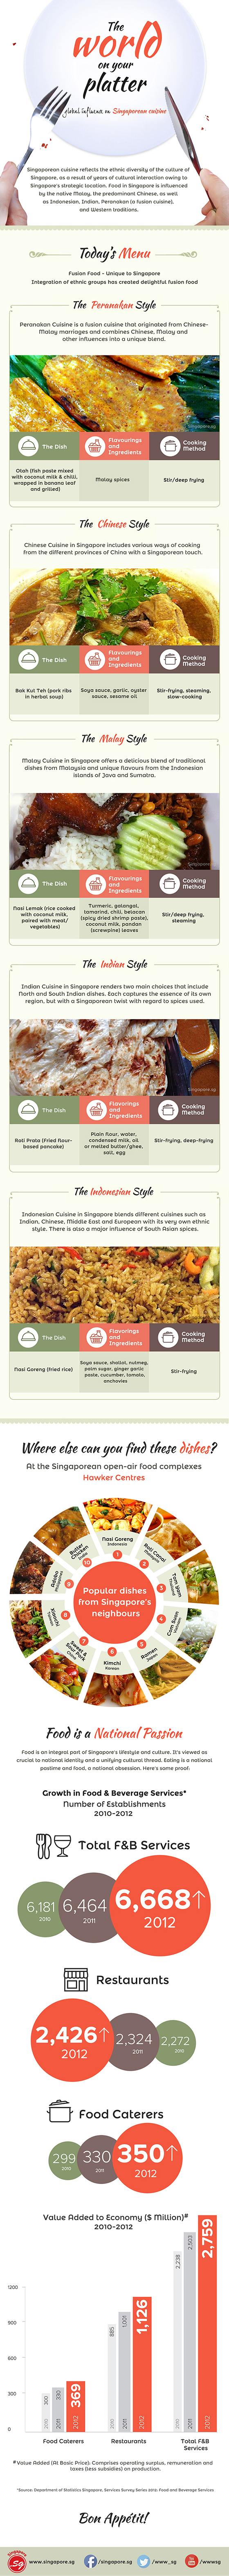 Singaporeon Cuisine: The World On Your Platter